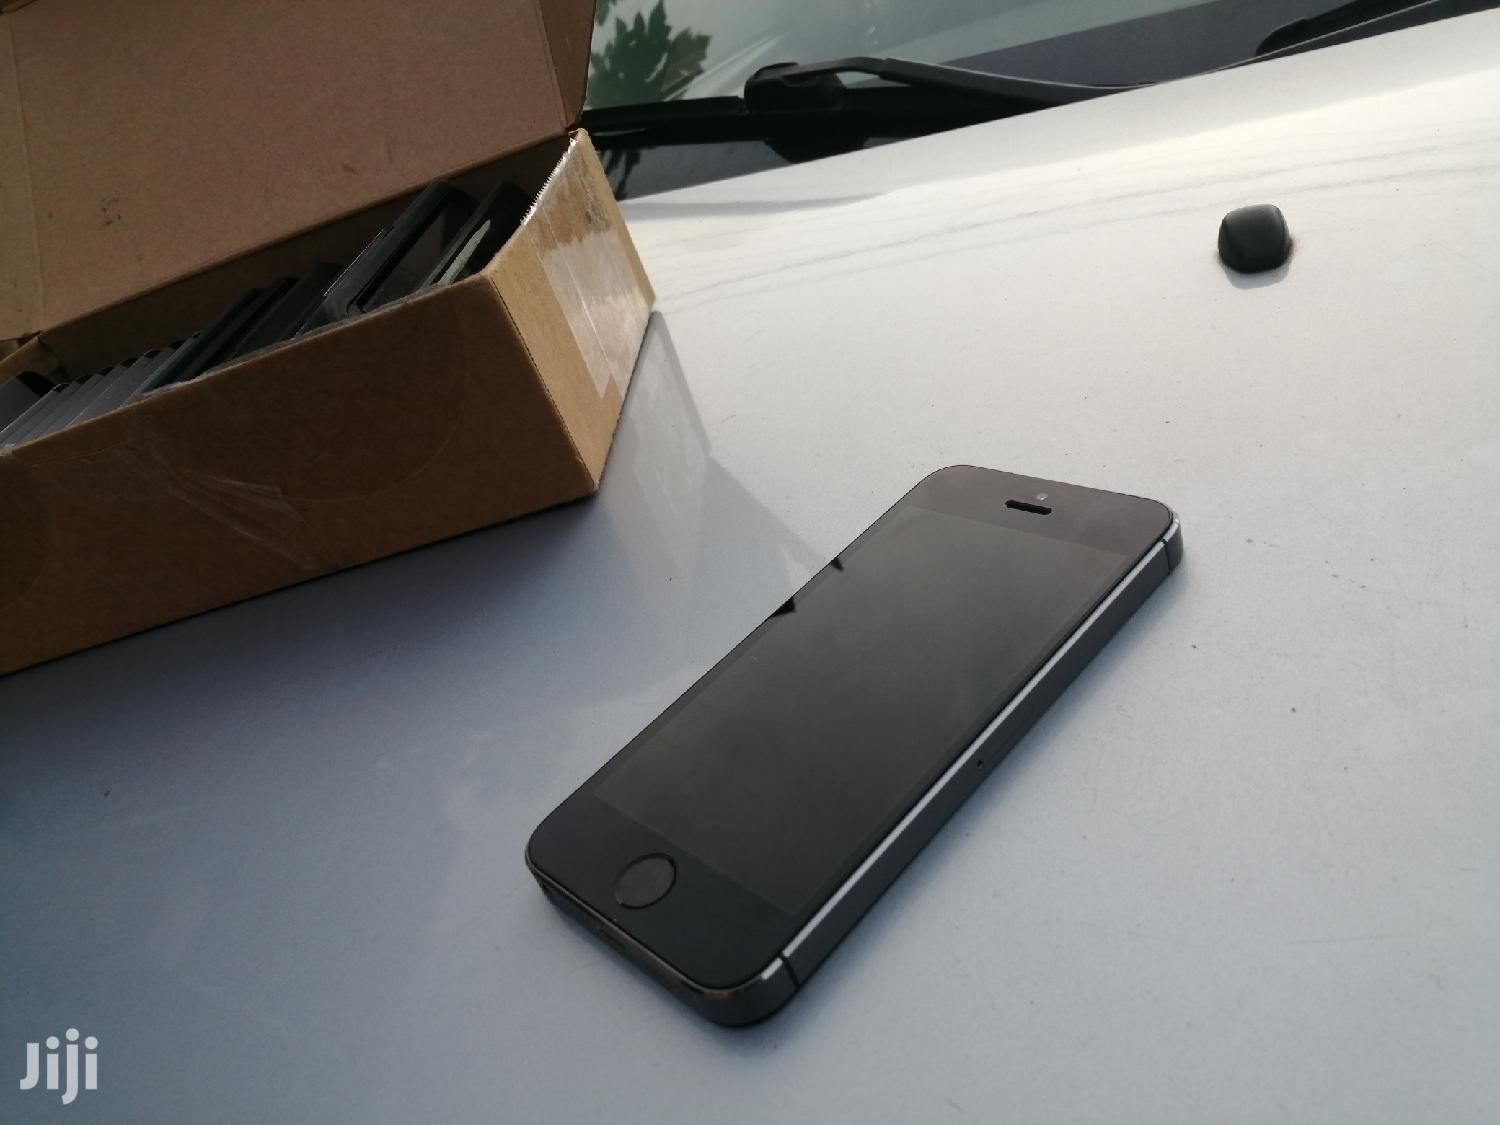 Archive: Apple iPhone 5s 16 GB Silver